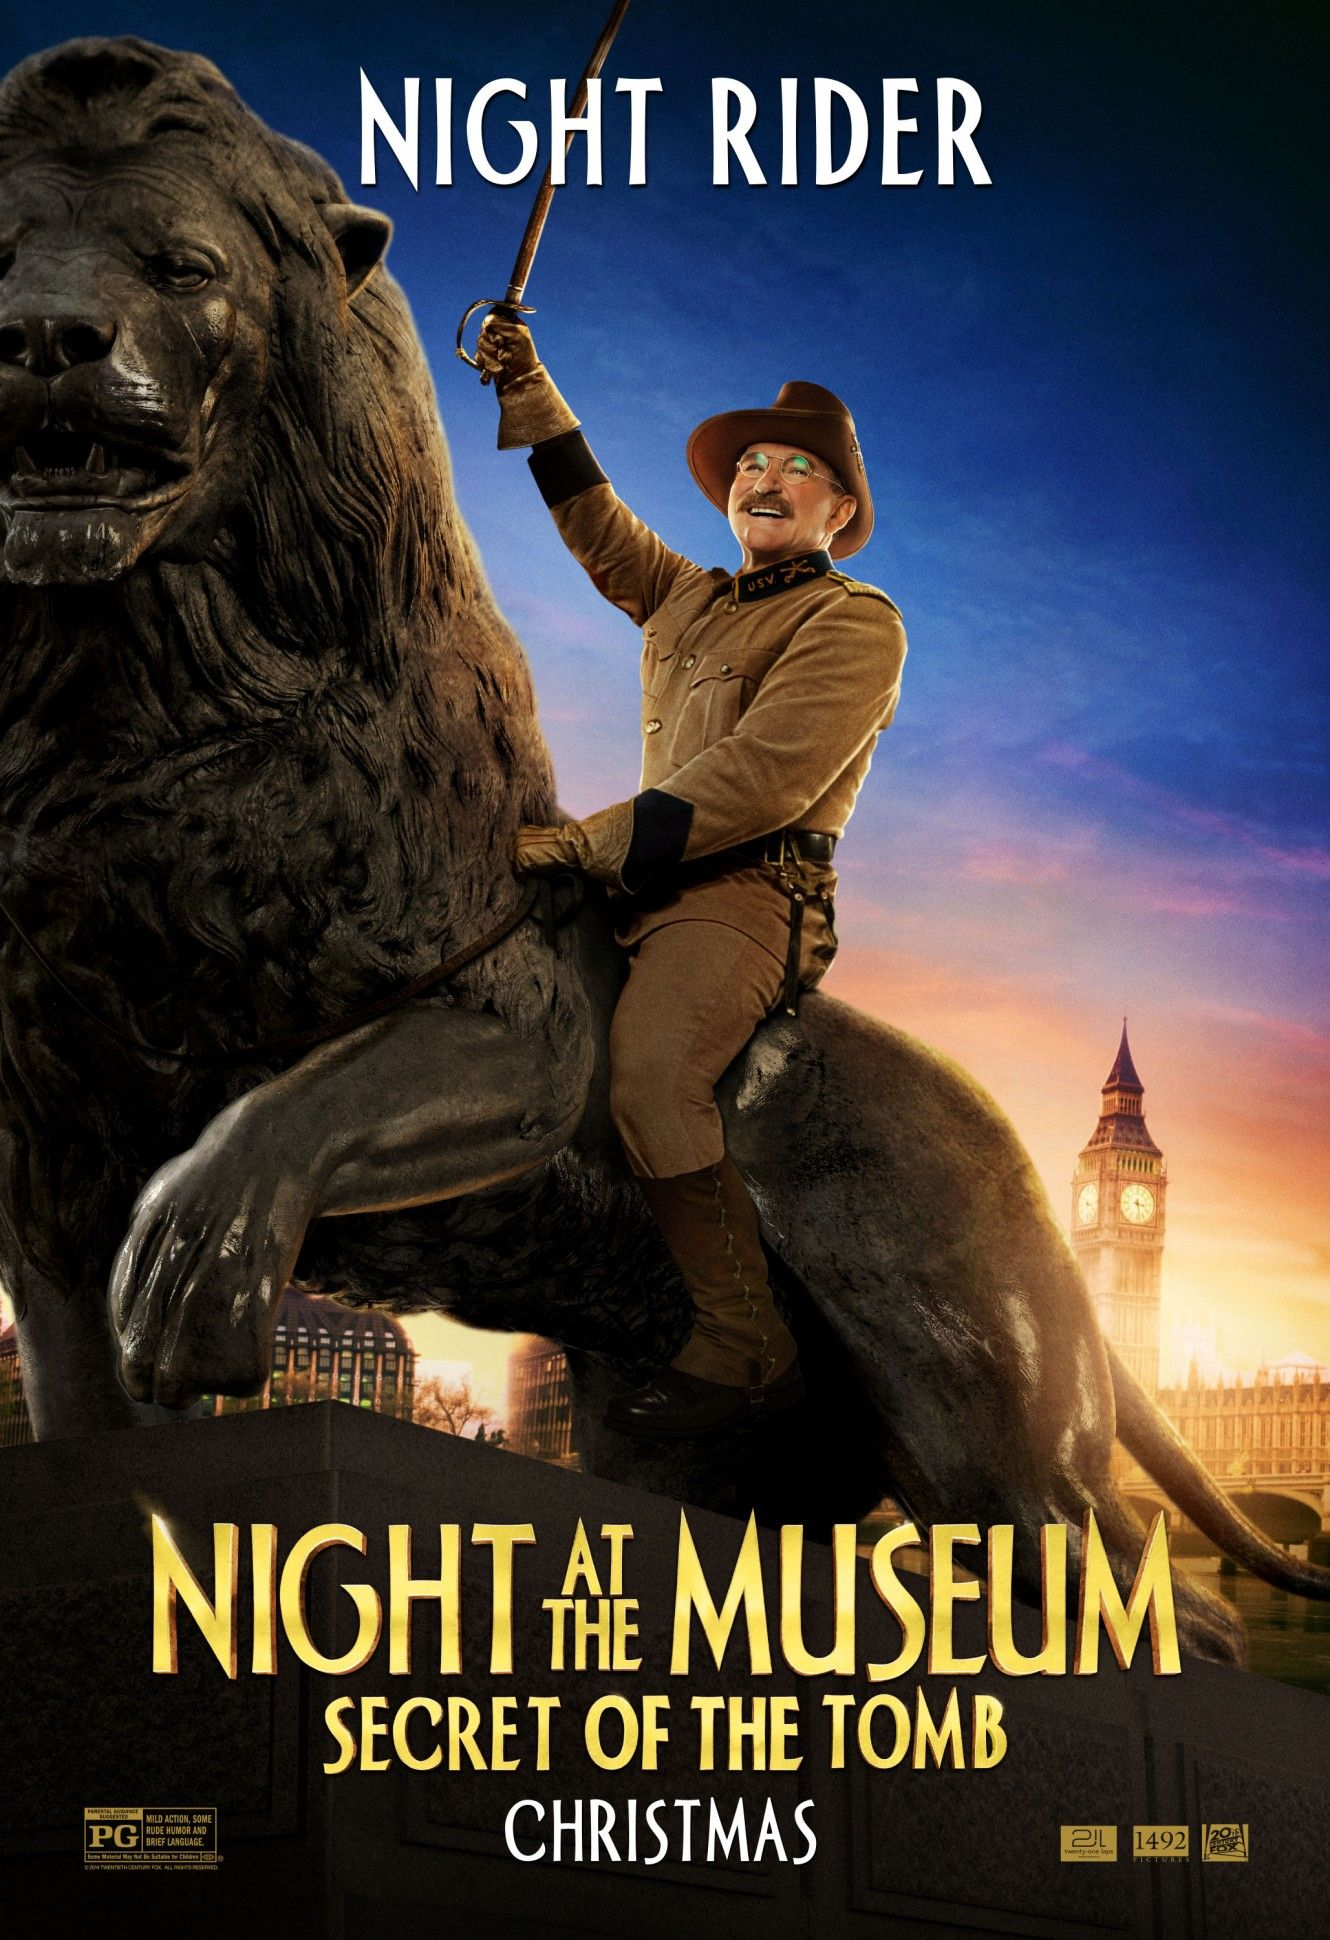 - Stiller NEW 2014 Movie Poster 24x36 Night at the Museum Secret of the Tomb